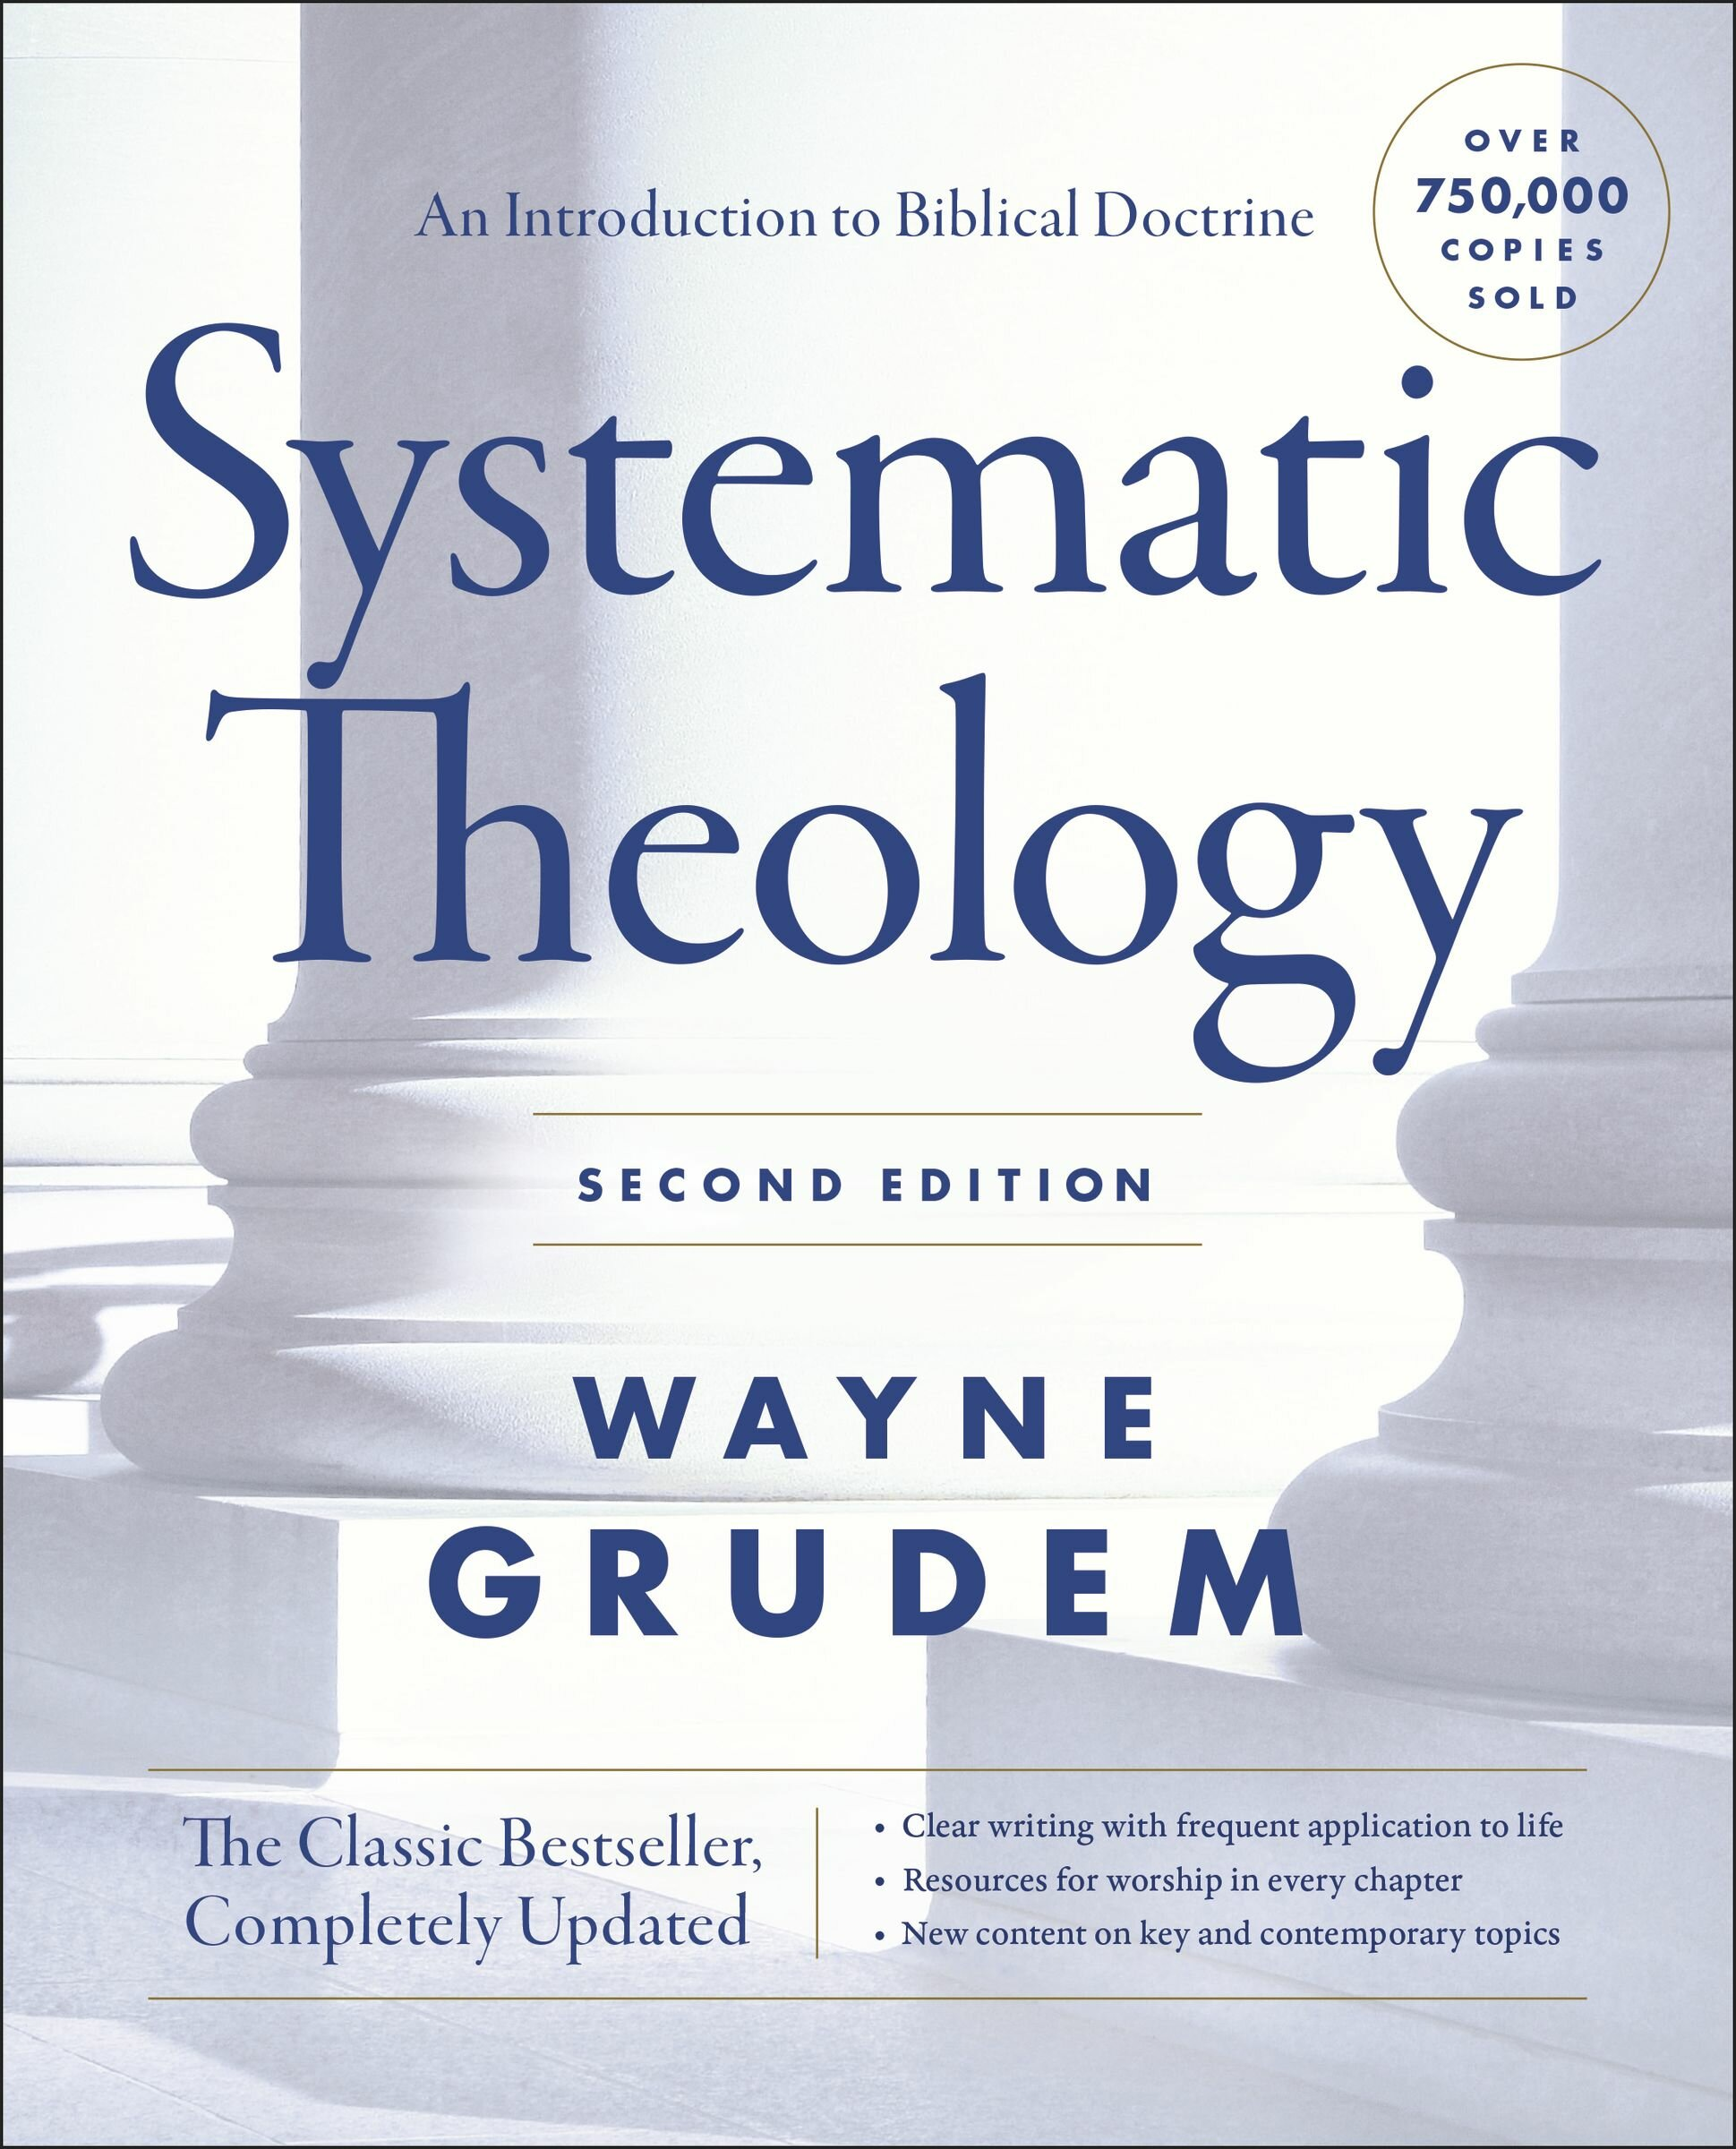 Systematic Theology: An Introduction to Biblical Doctrine, 2nd ed.